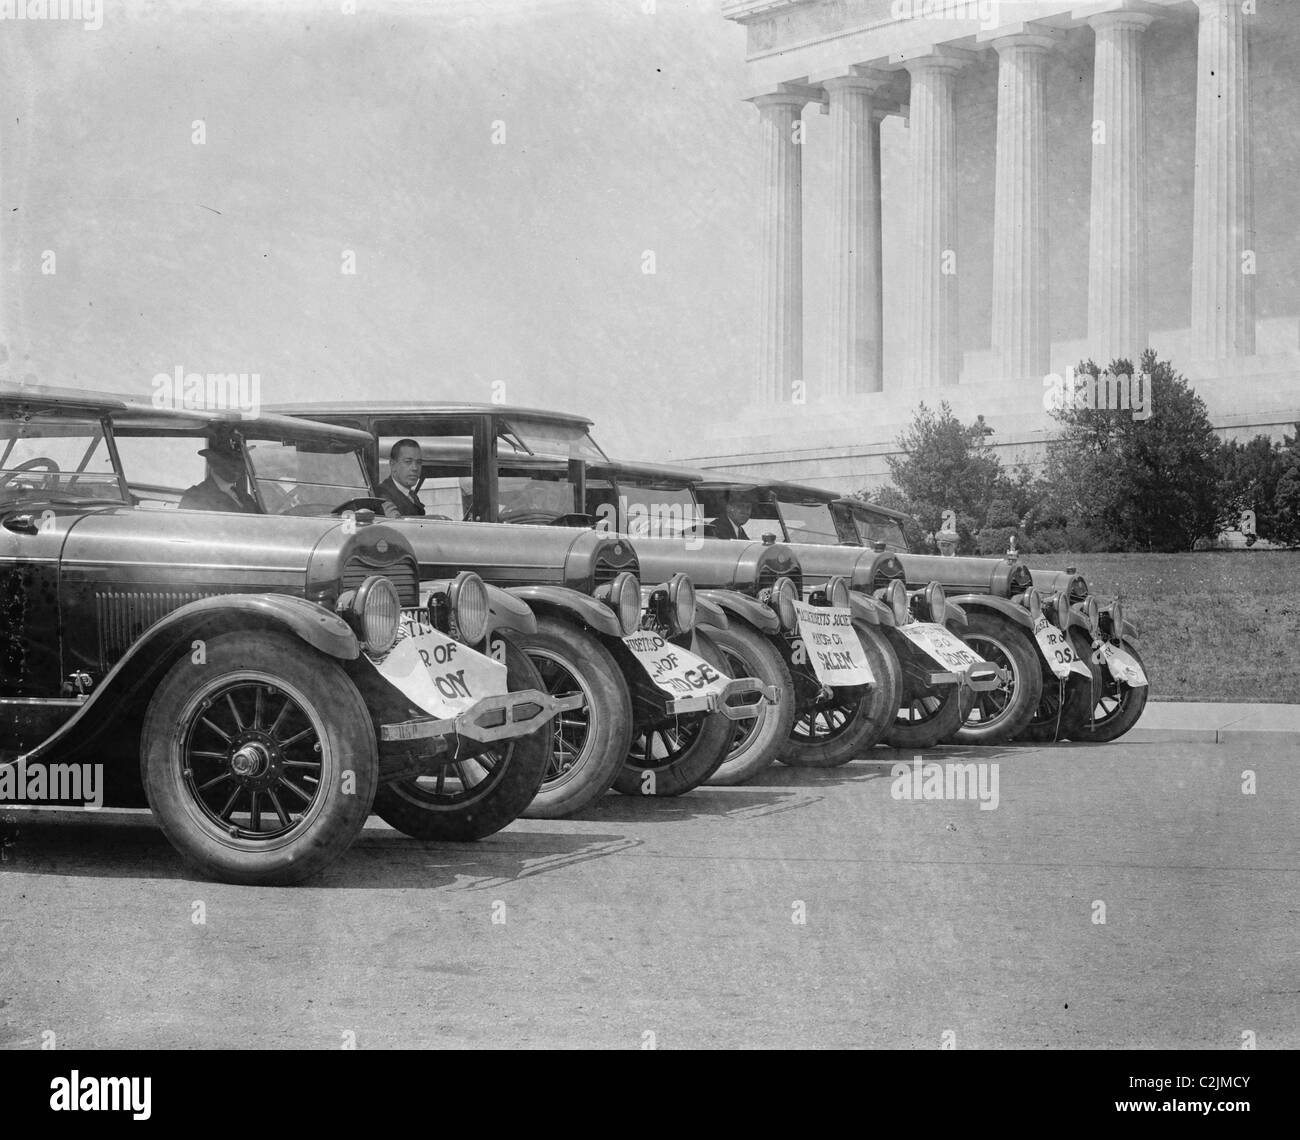 Ford Motor cars parked in front of the Lincoln Memorial in DC - Stock Image